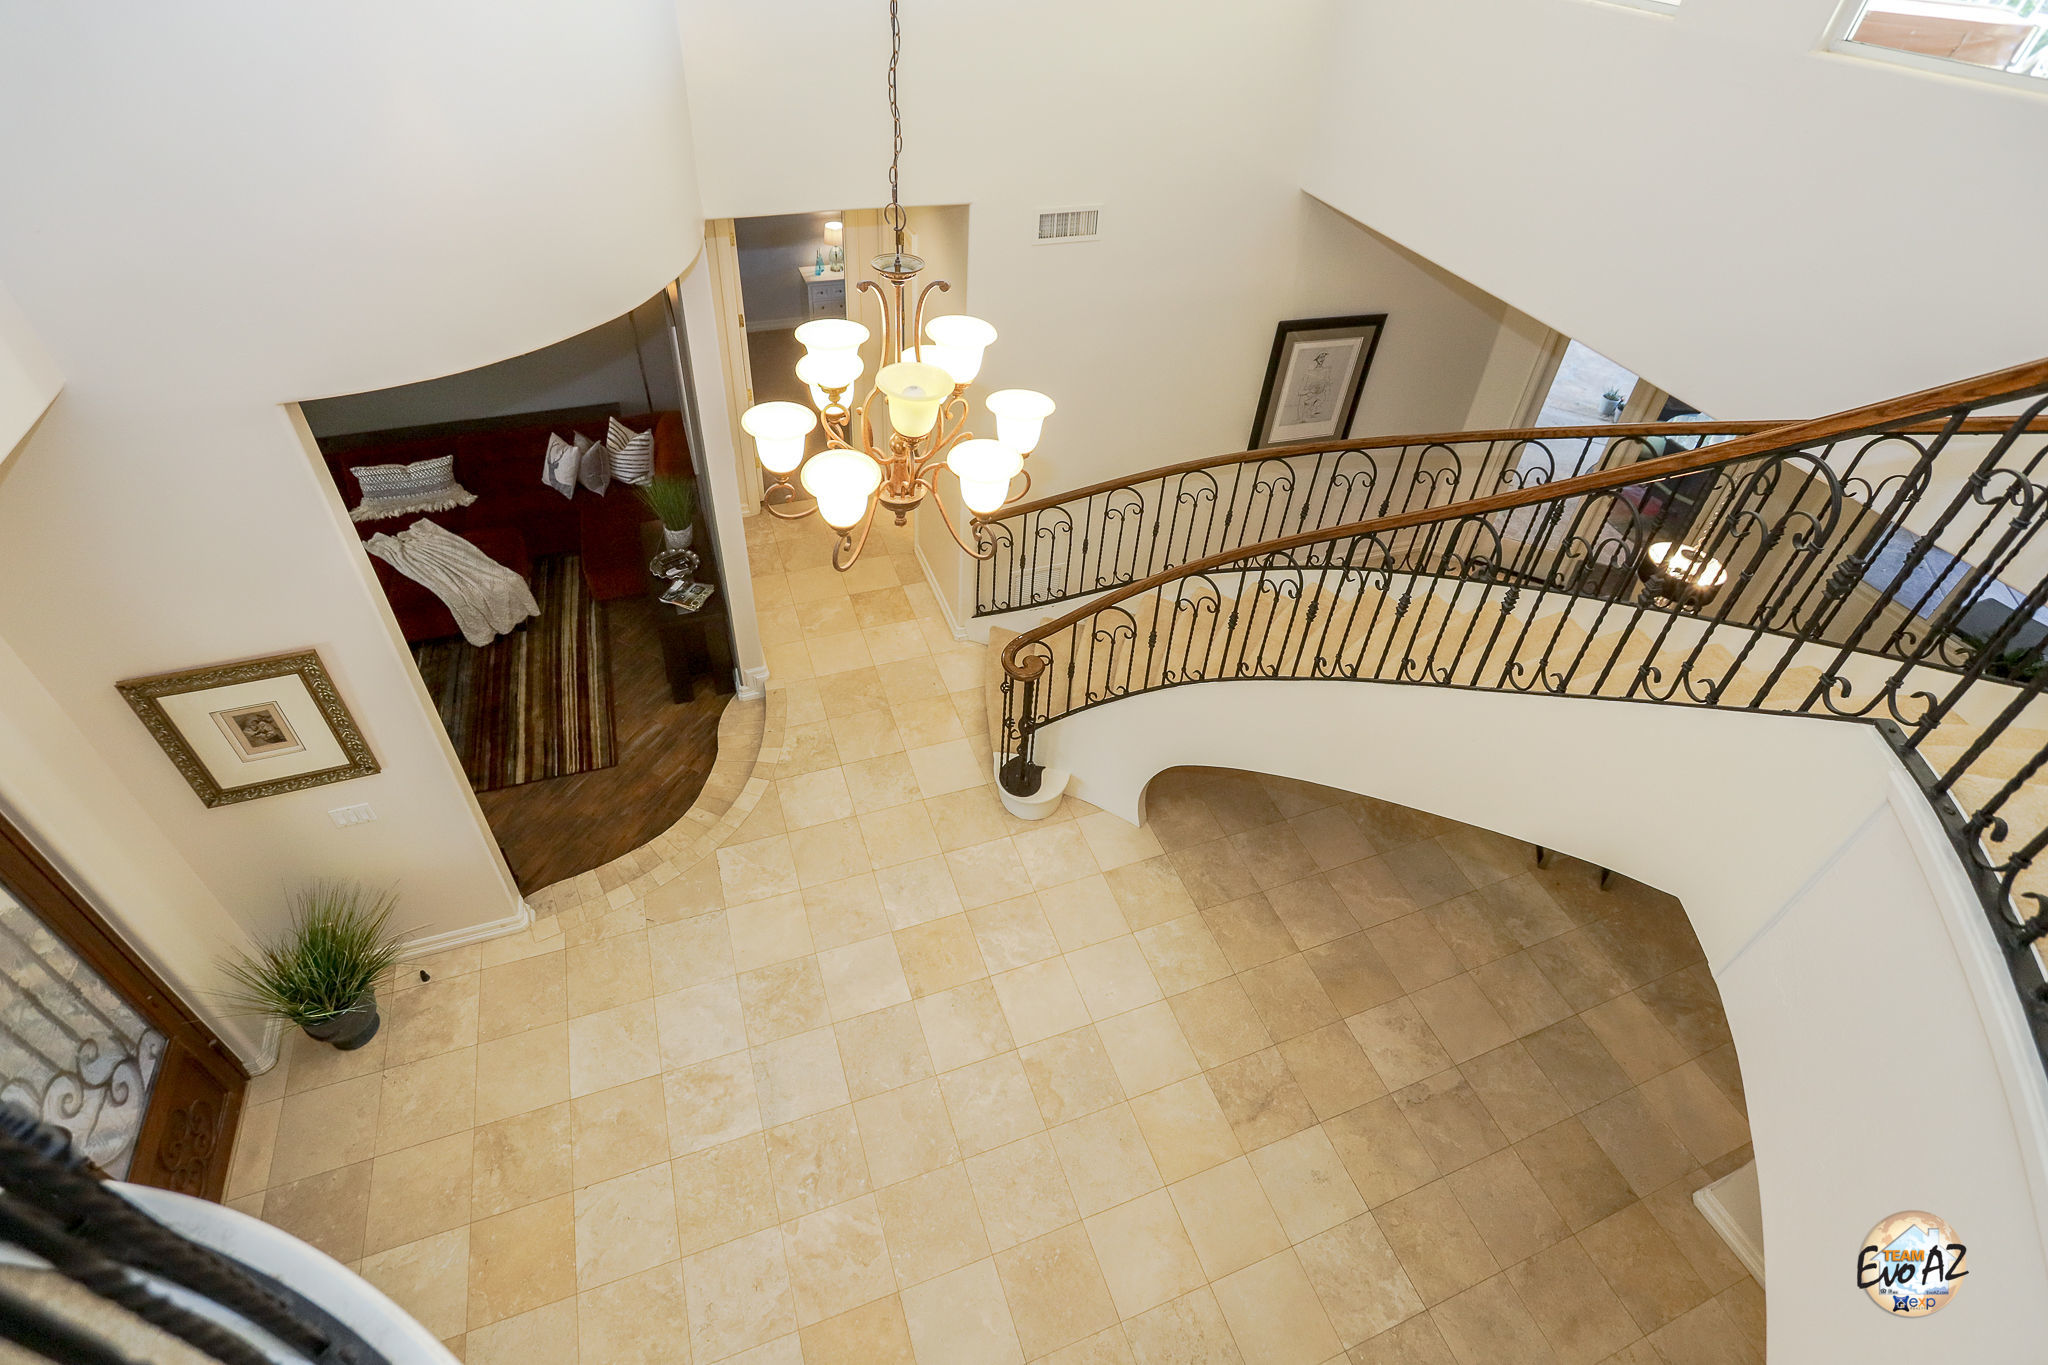 This gorgeous custom home is for sale and located in Ahwatukee Custom Estates. Contact The Ahwatukee Mom for details.